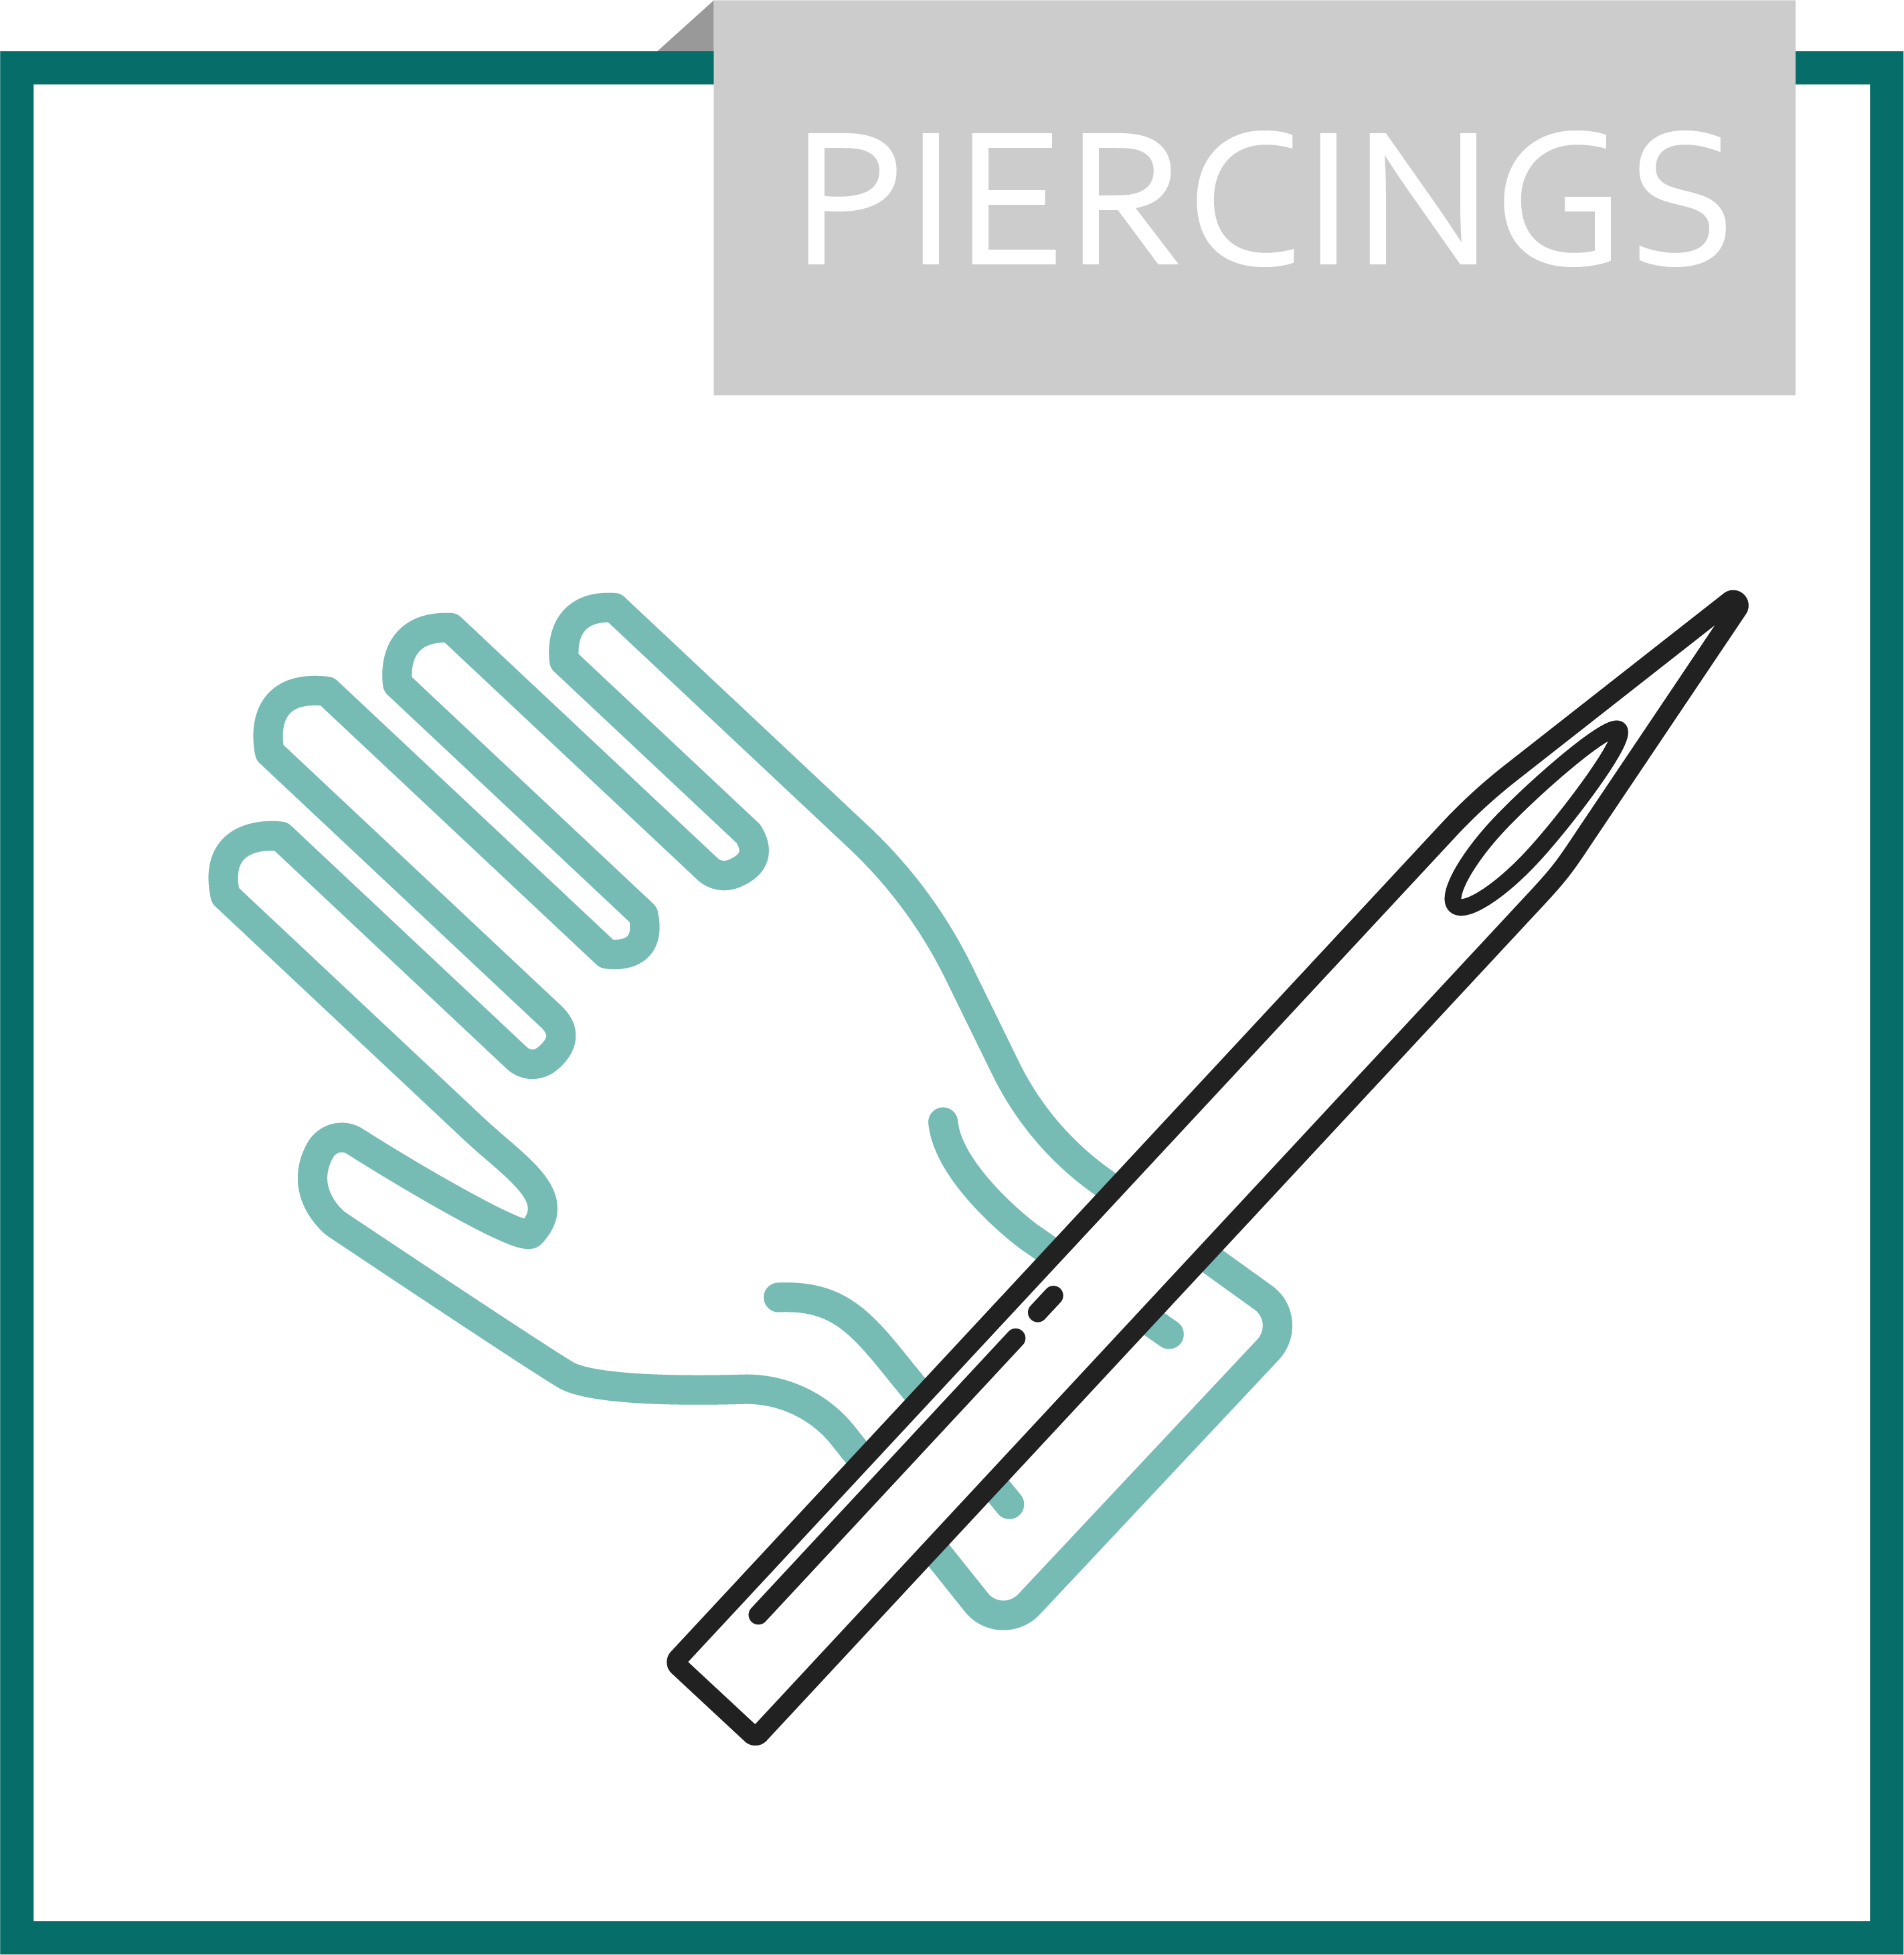 piercing_icon